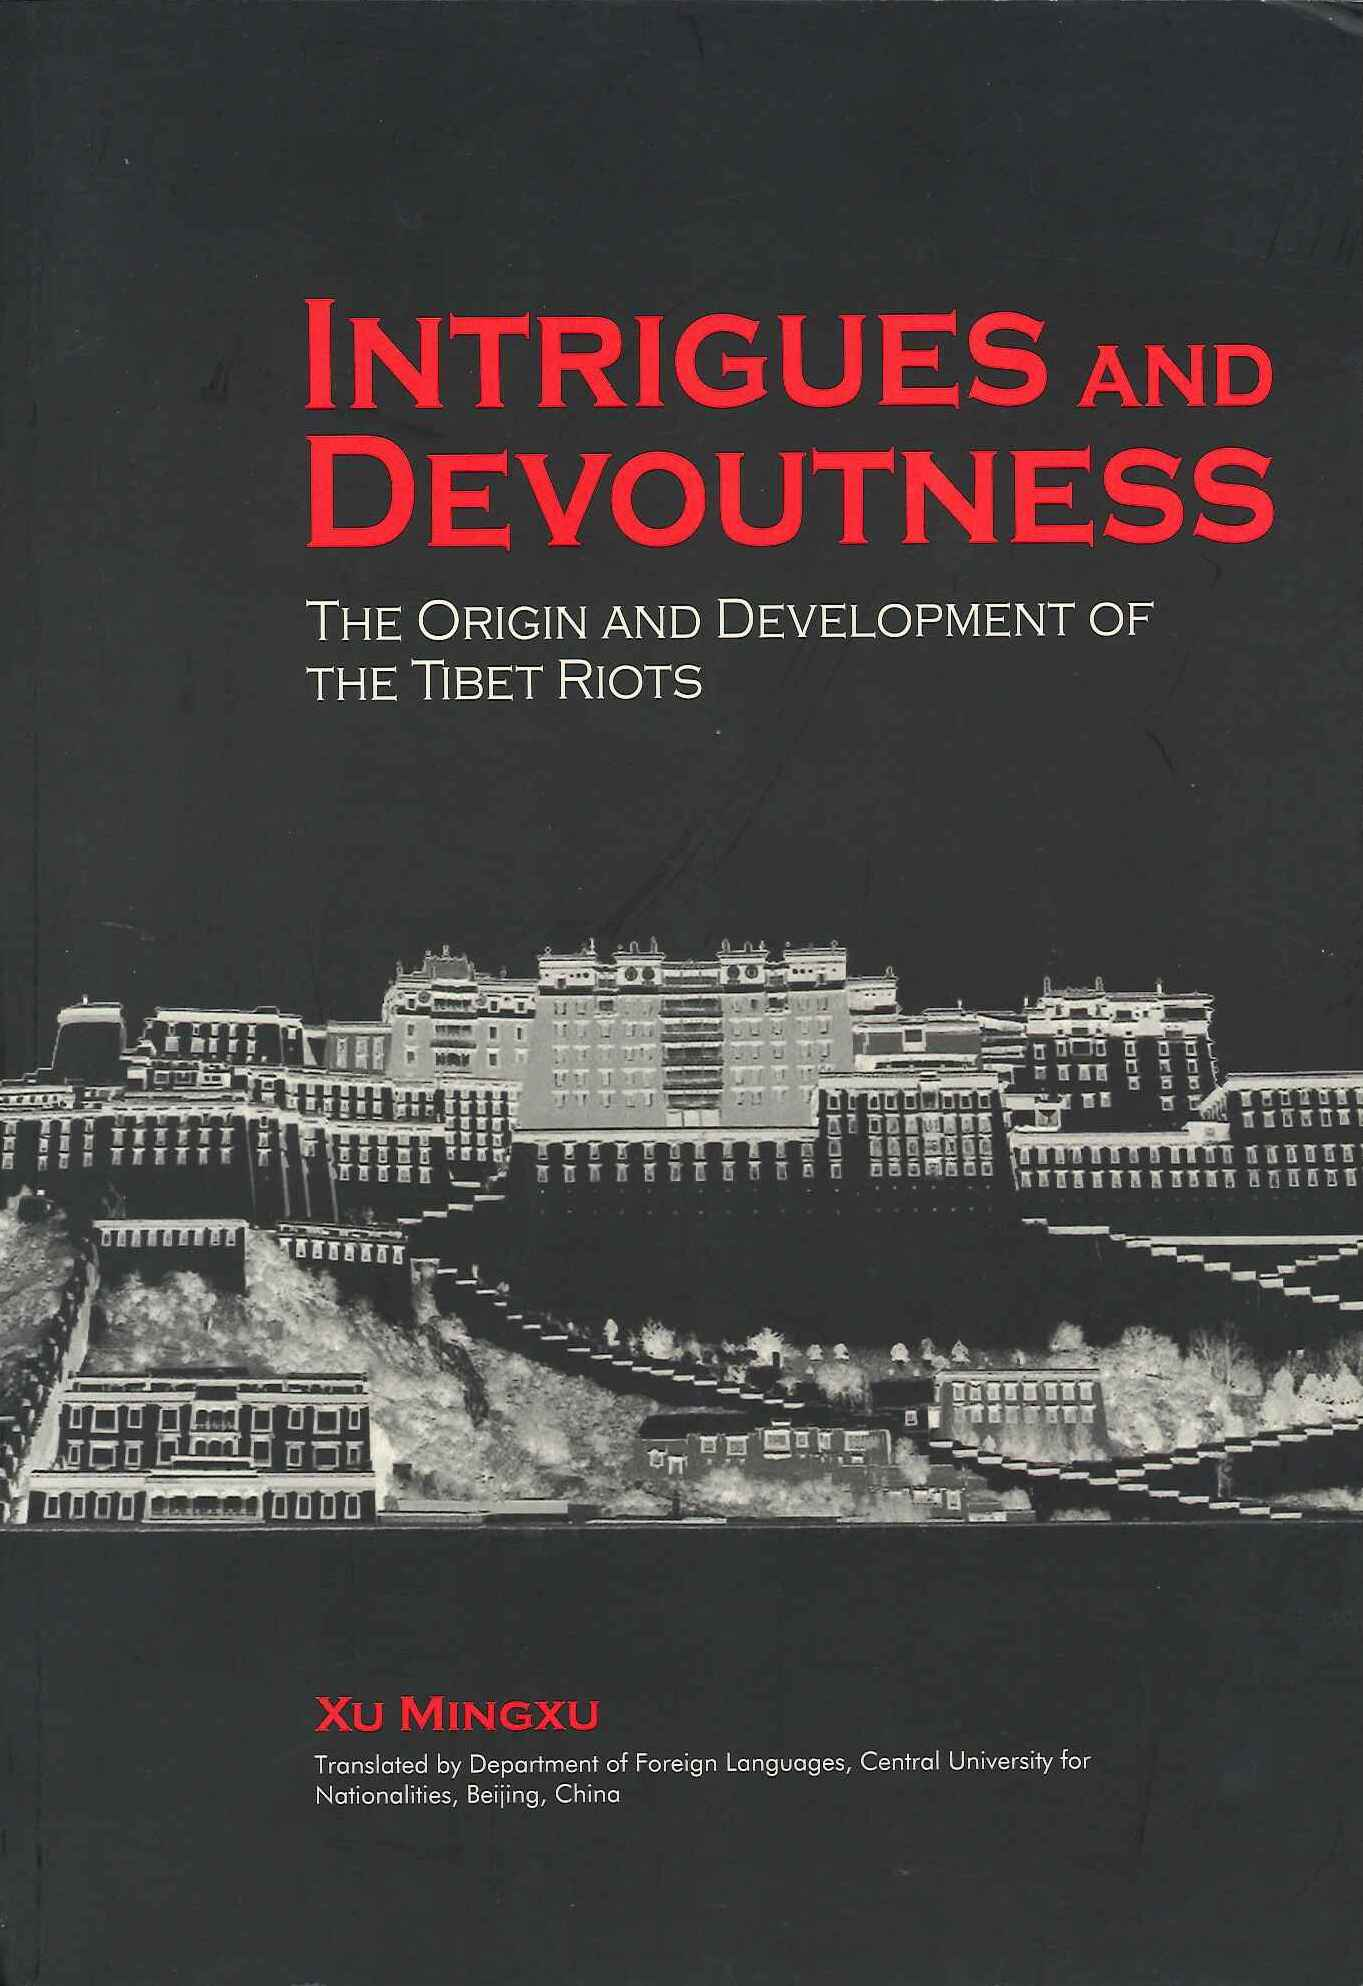 Intrigues and Devoutness -- The Origin and Development of the Tibet Riots